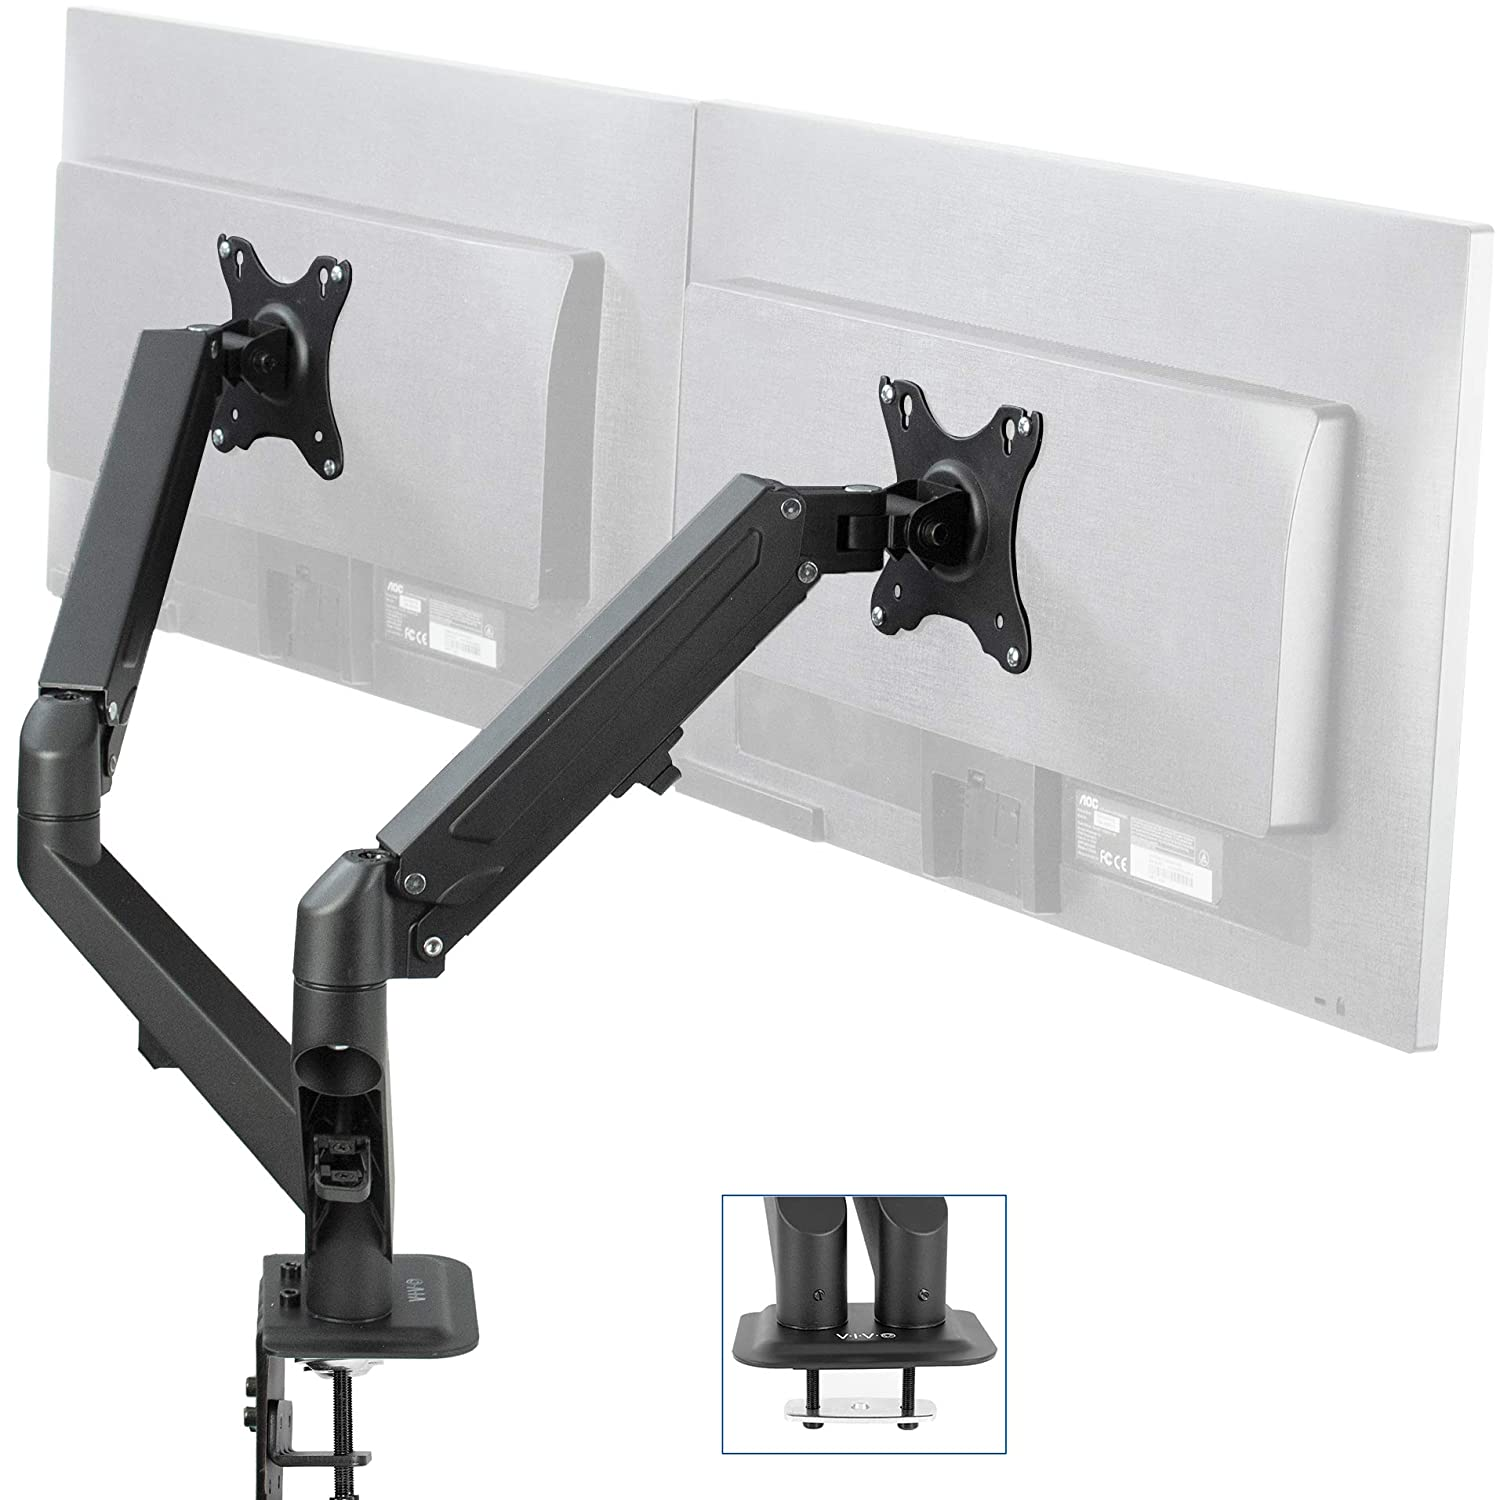 STAND-V002W VIVO White Dual 13 to 27 inch LCD LED Monitor Desk Mount Stand with C-clamp and Bolt-Through Grommet Heavy Duty Fully Adjustable Arms for 2 Screens